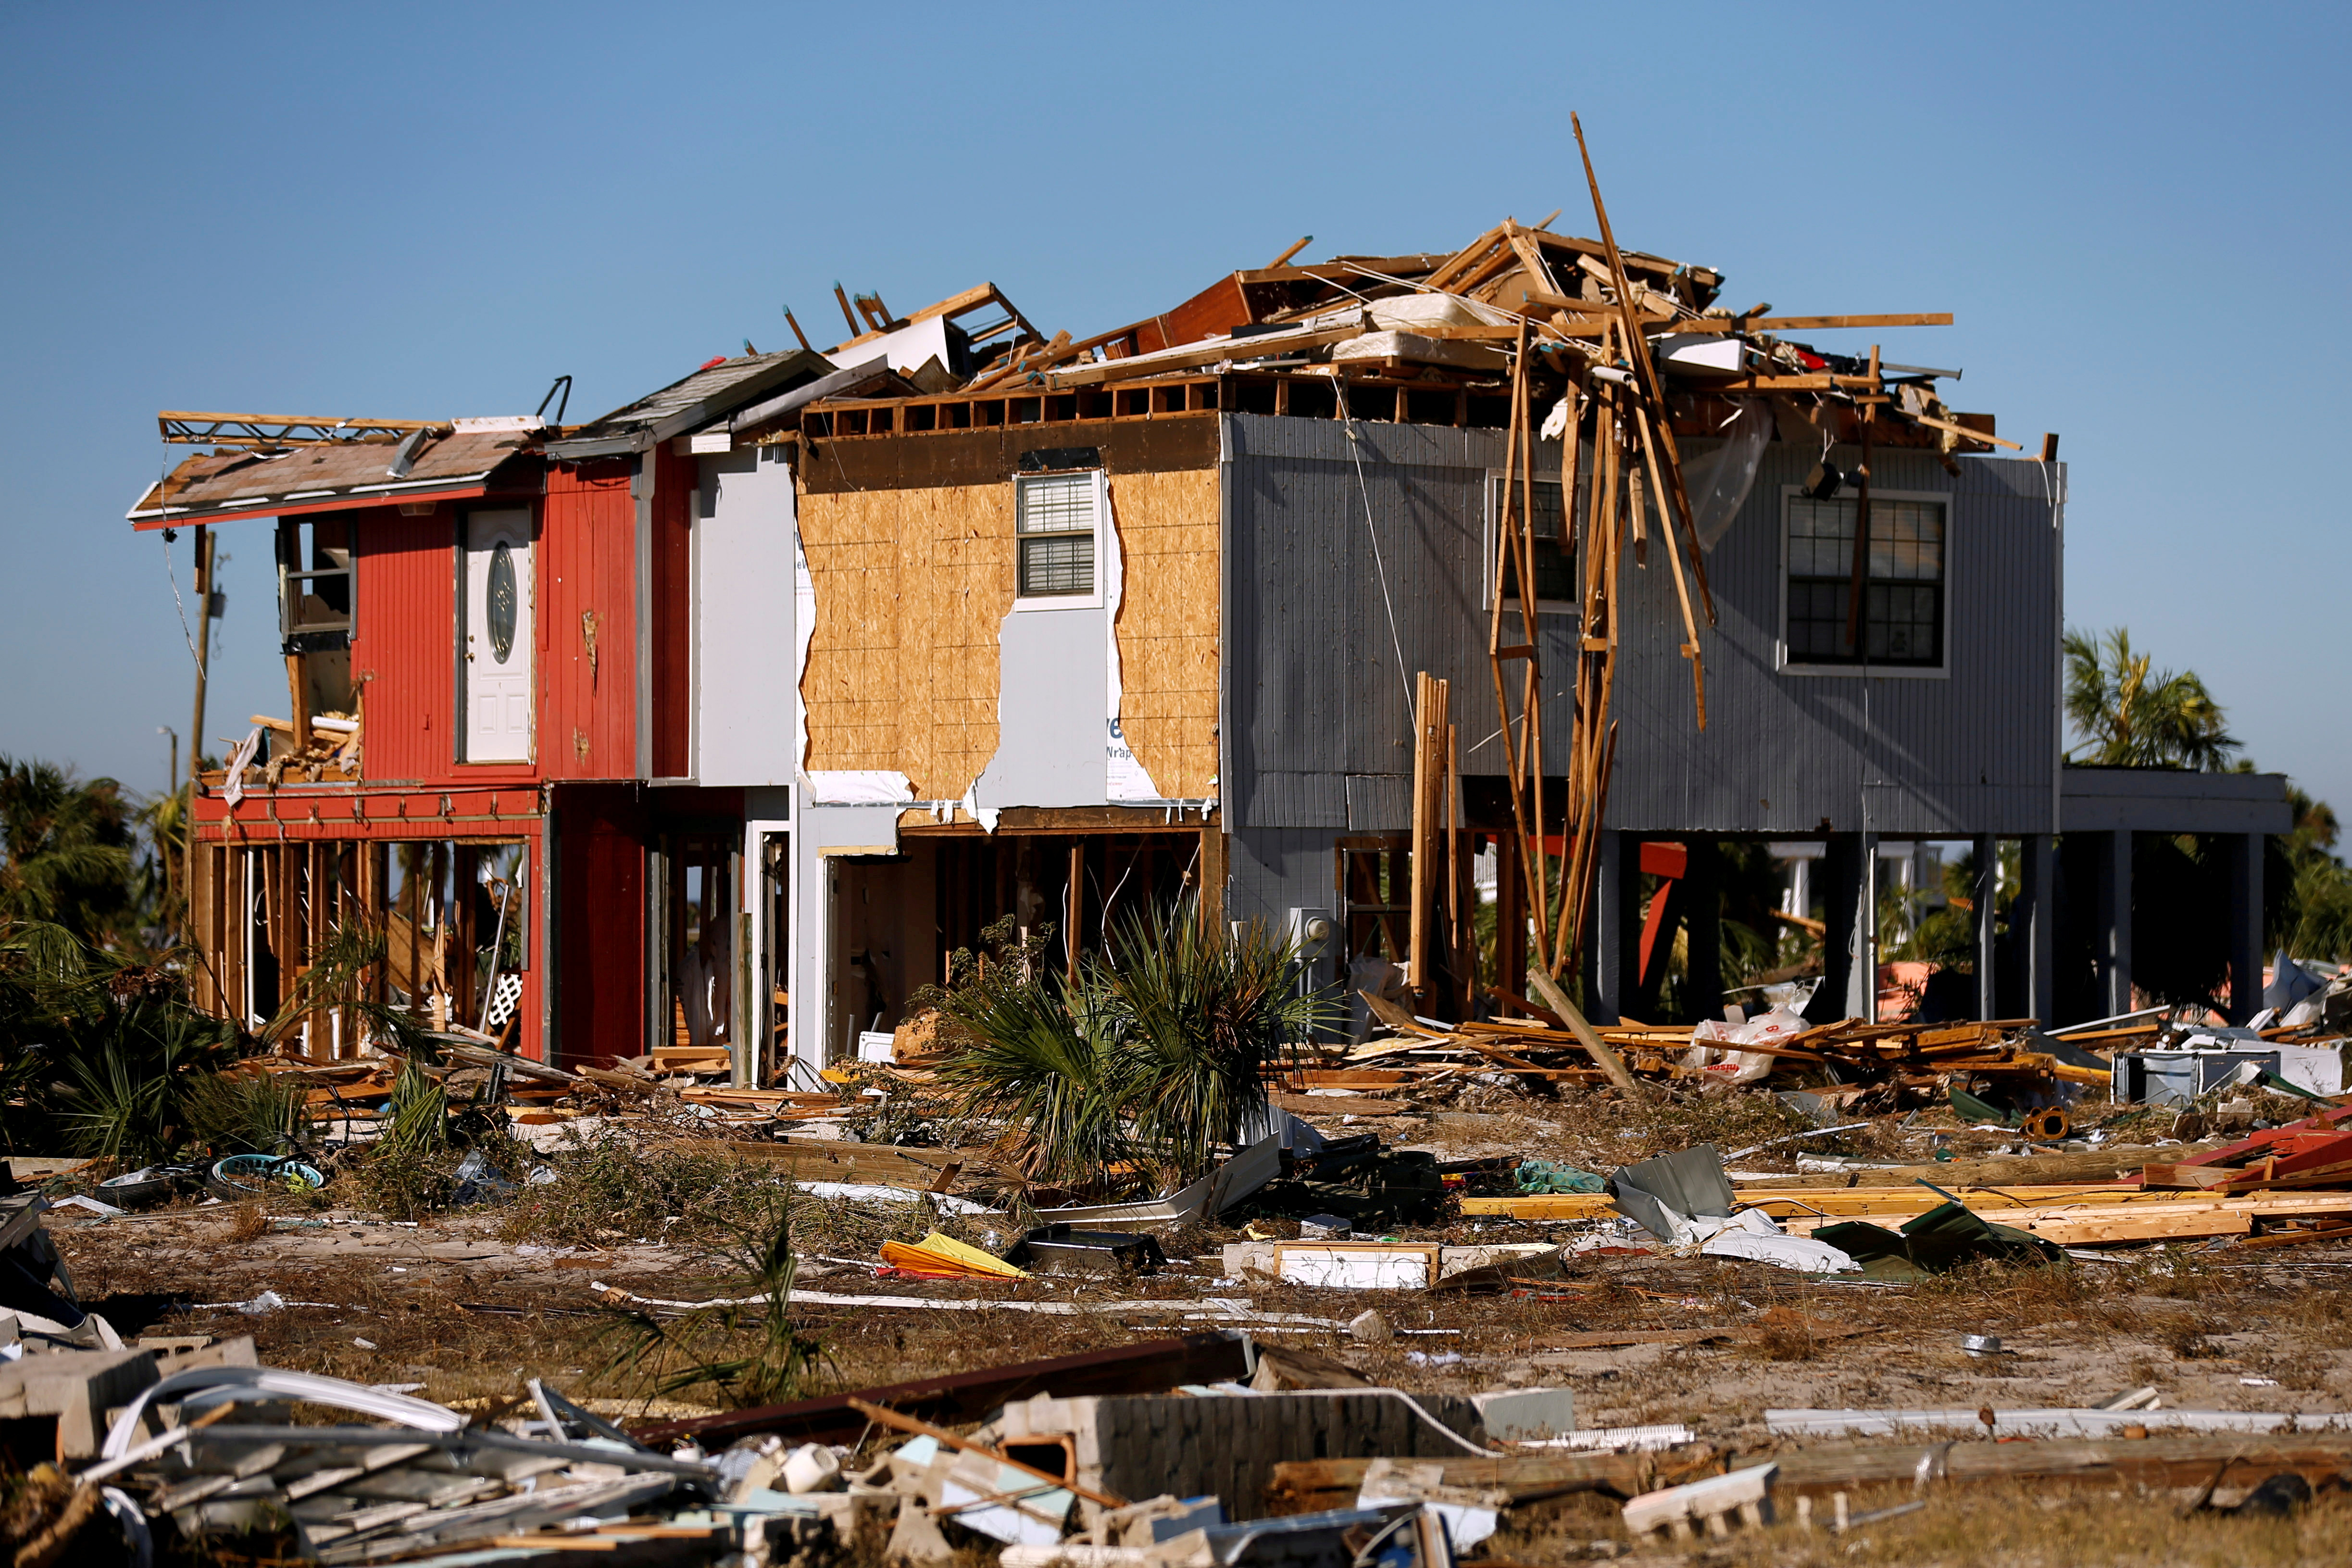 A house damaged by Hurricane Michael is pictured in Mexico Beach, Florida, U.S. October 12, 2018. REUTERS/Jonathan Bachman/File Photo